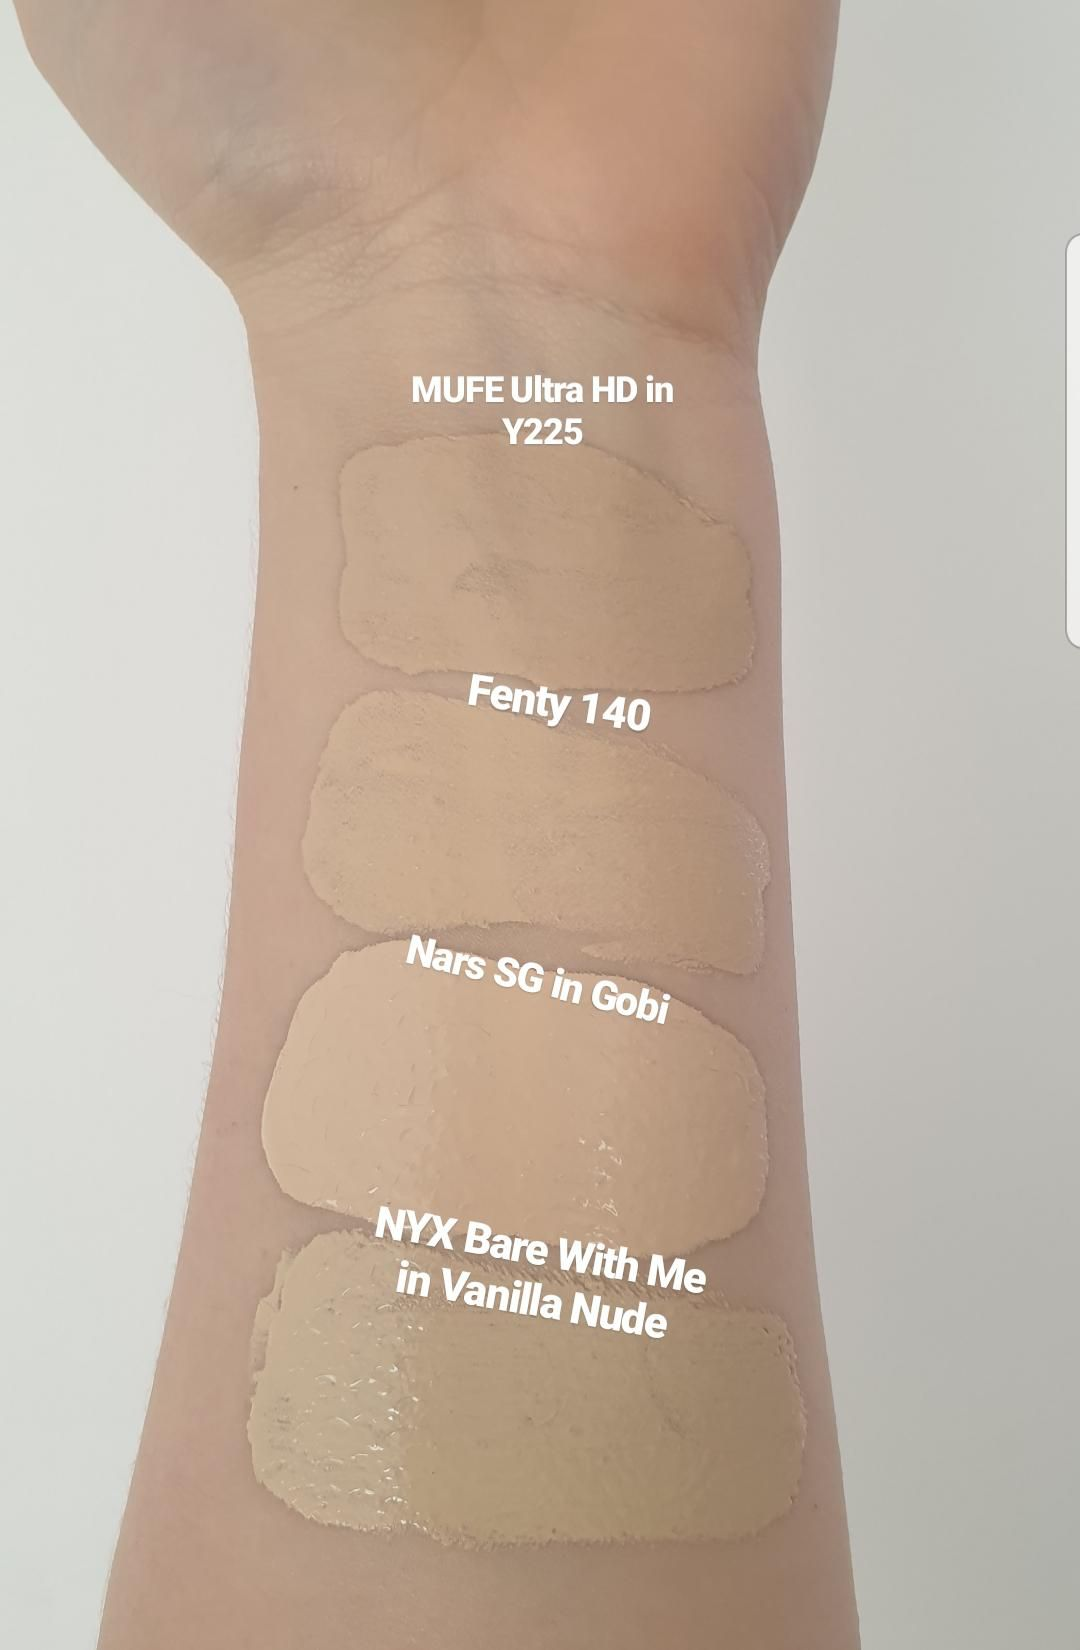 NYX Bare With Me in Vanilla Nude swatched against NARS